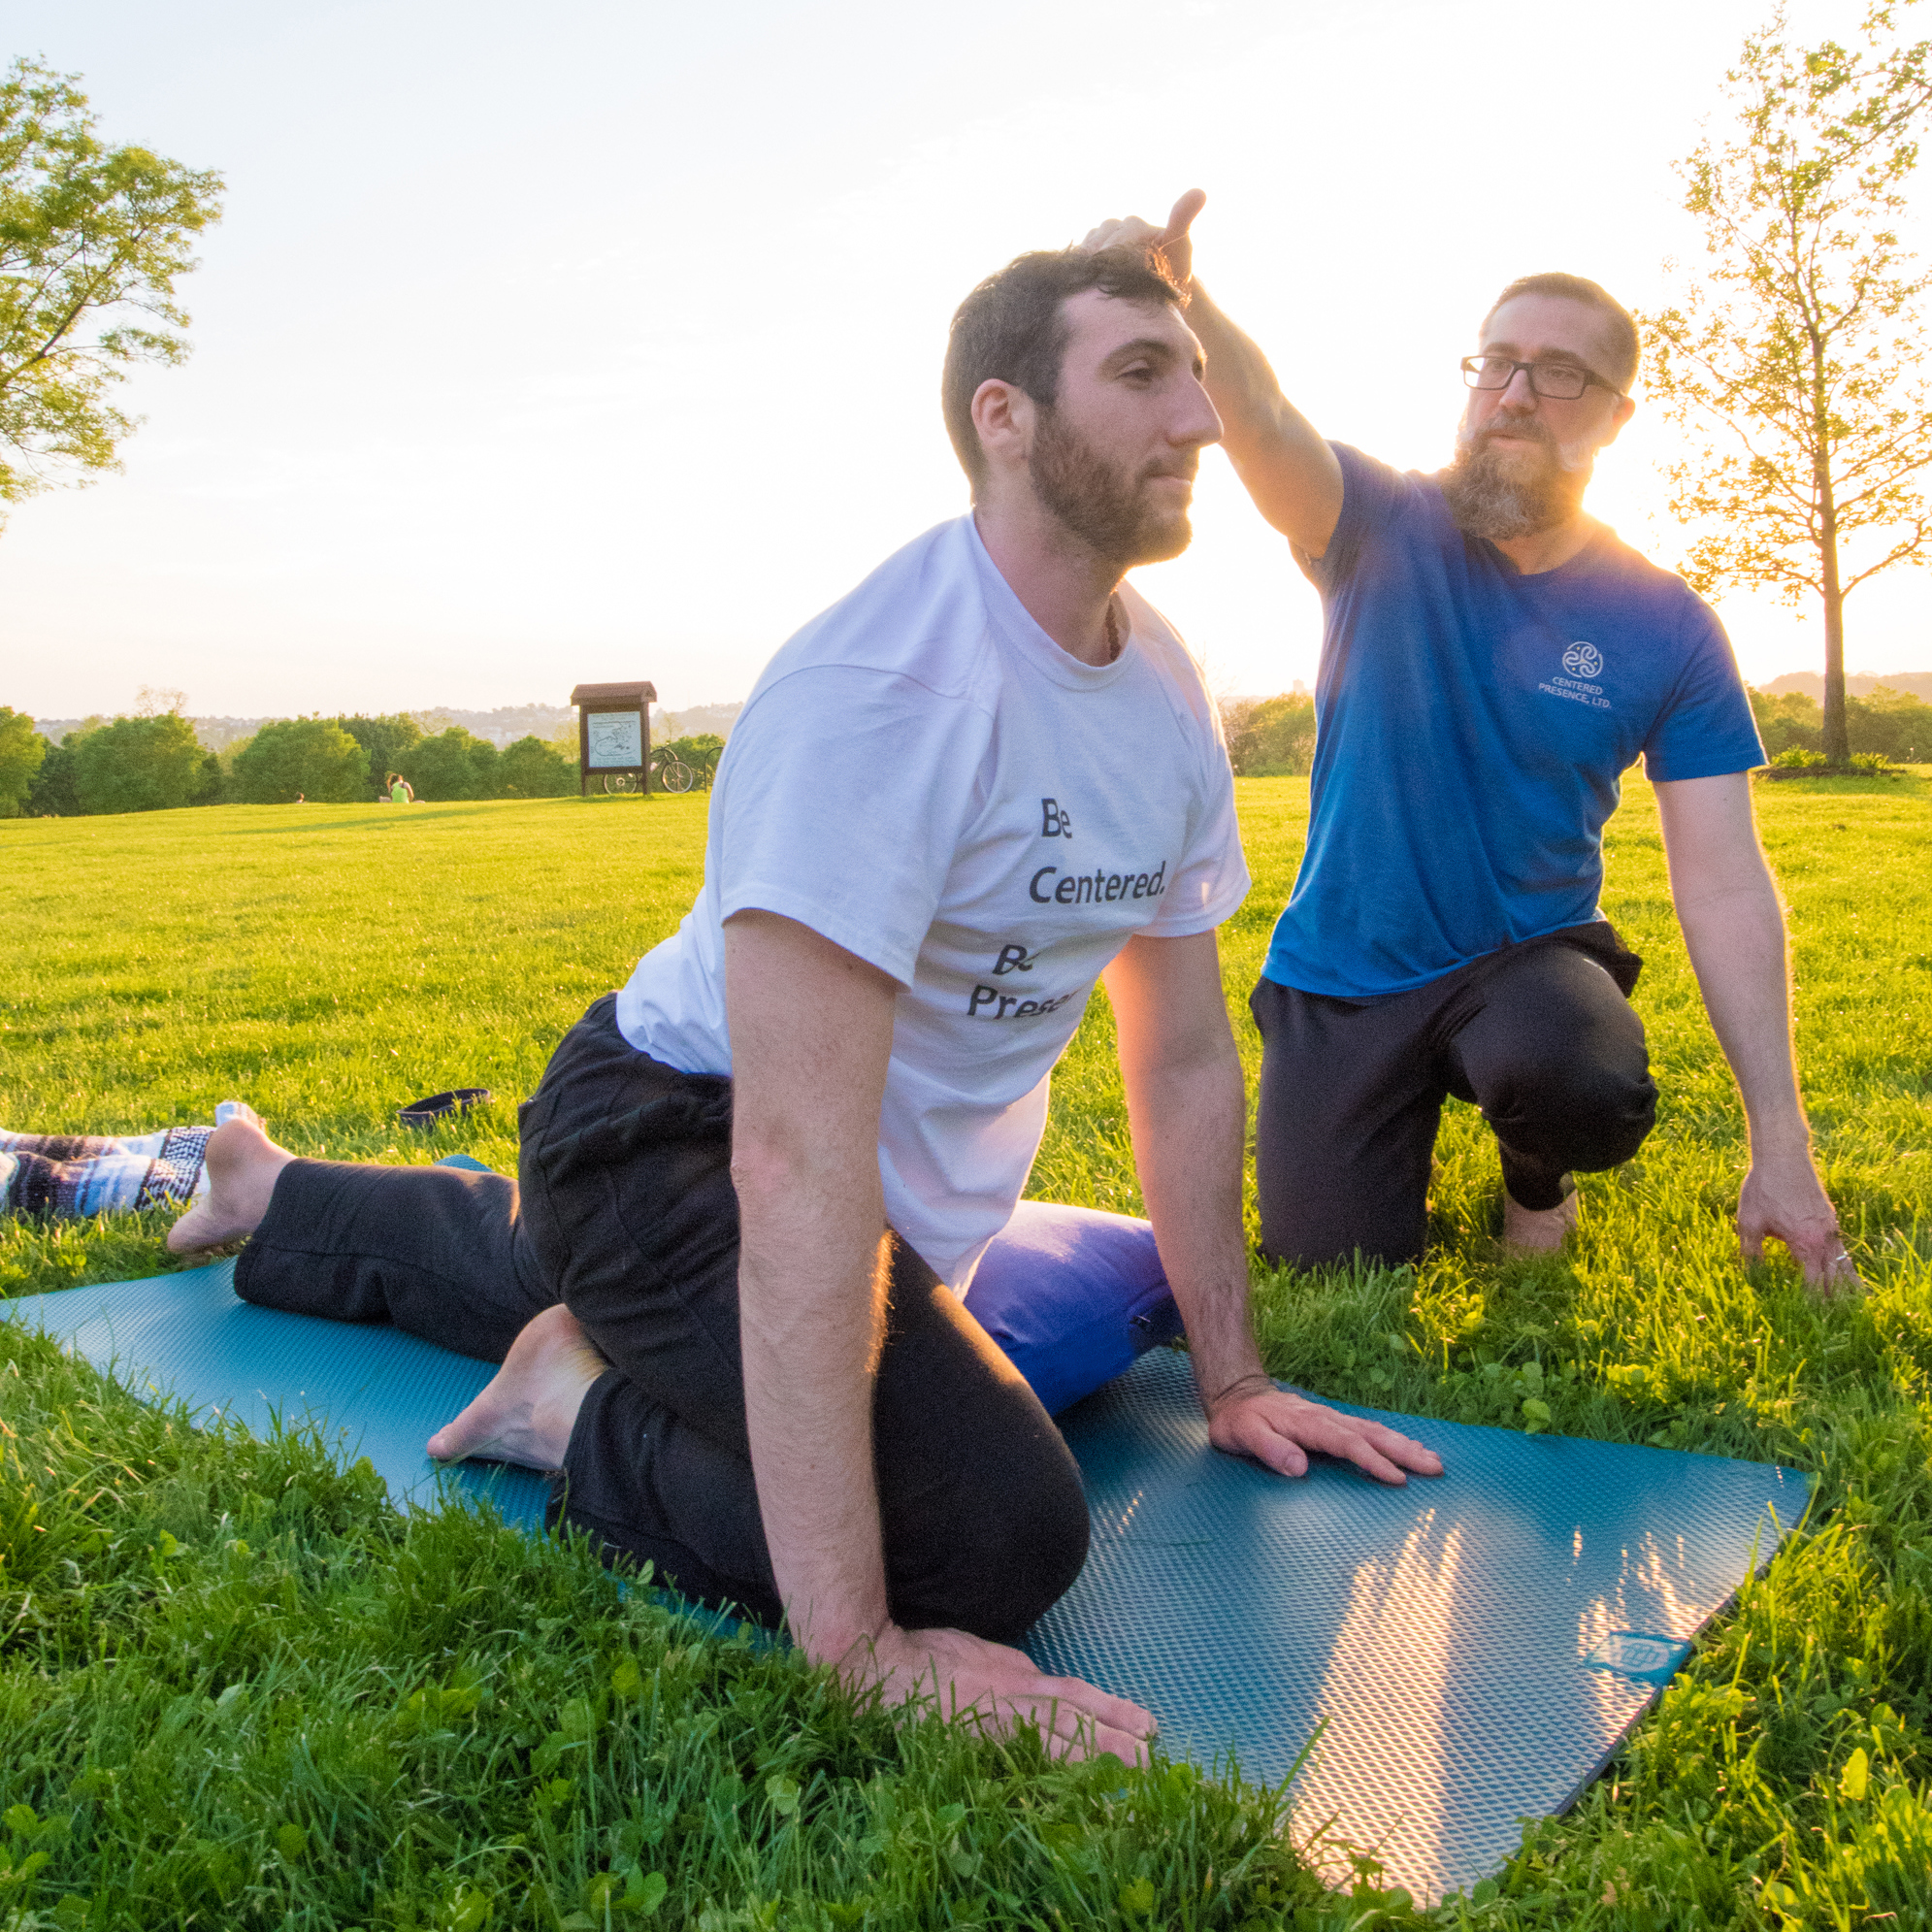 pigeon-pose-two-men-centered-presence-yoga-45 crop.jpg